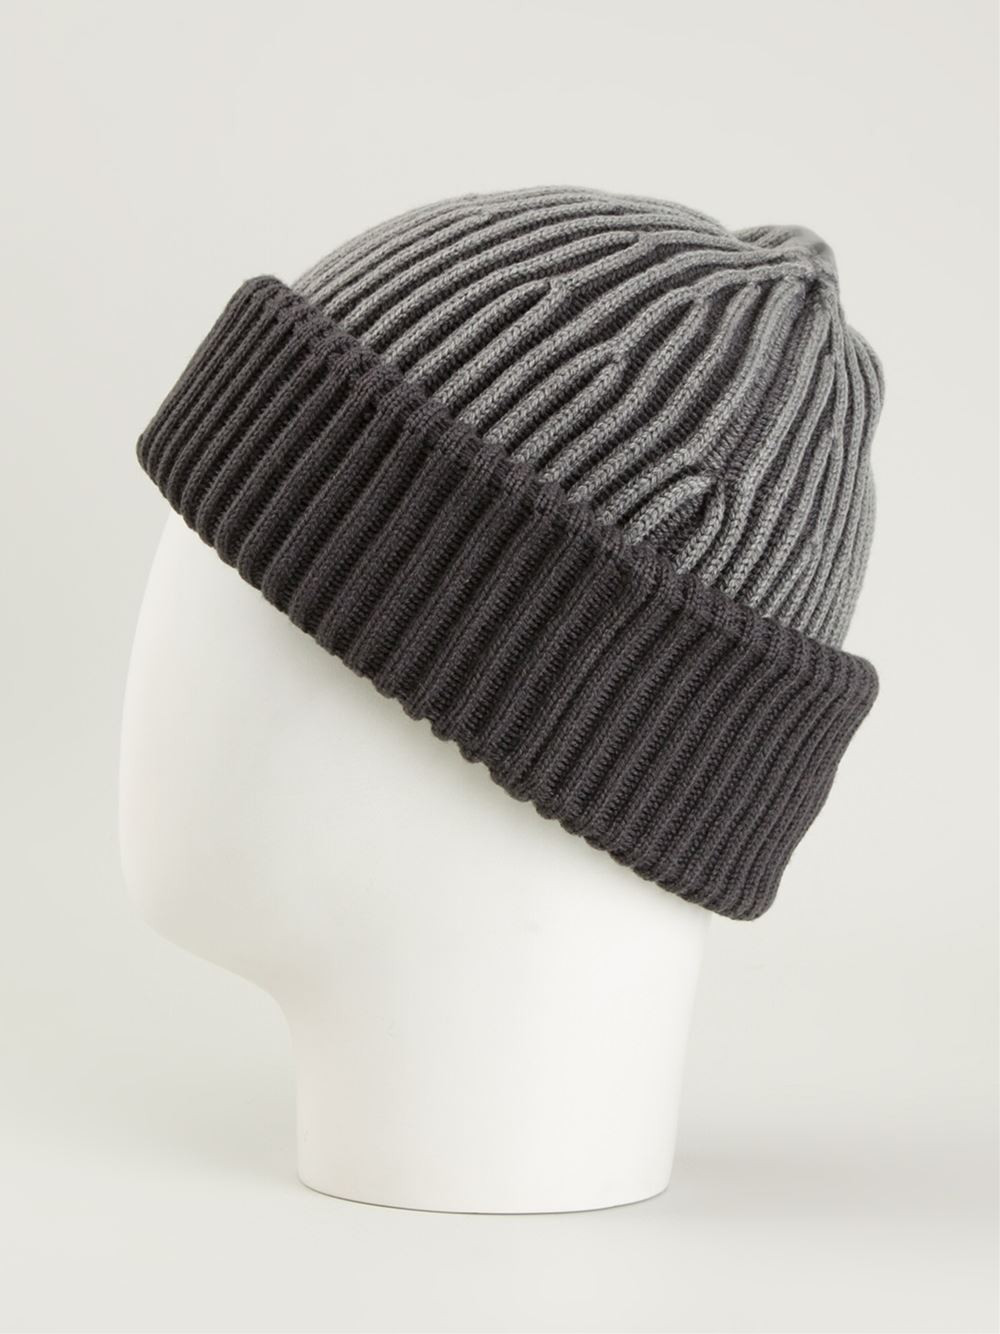 New Lyst Stone island Ribbed Hat In Gray for Men Ribbed Hat Of Amazing 42 Pictures Ribbed Hat